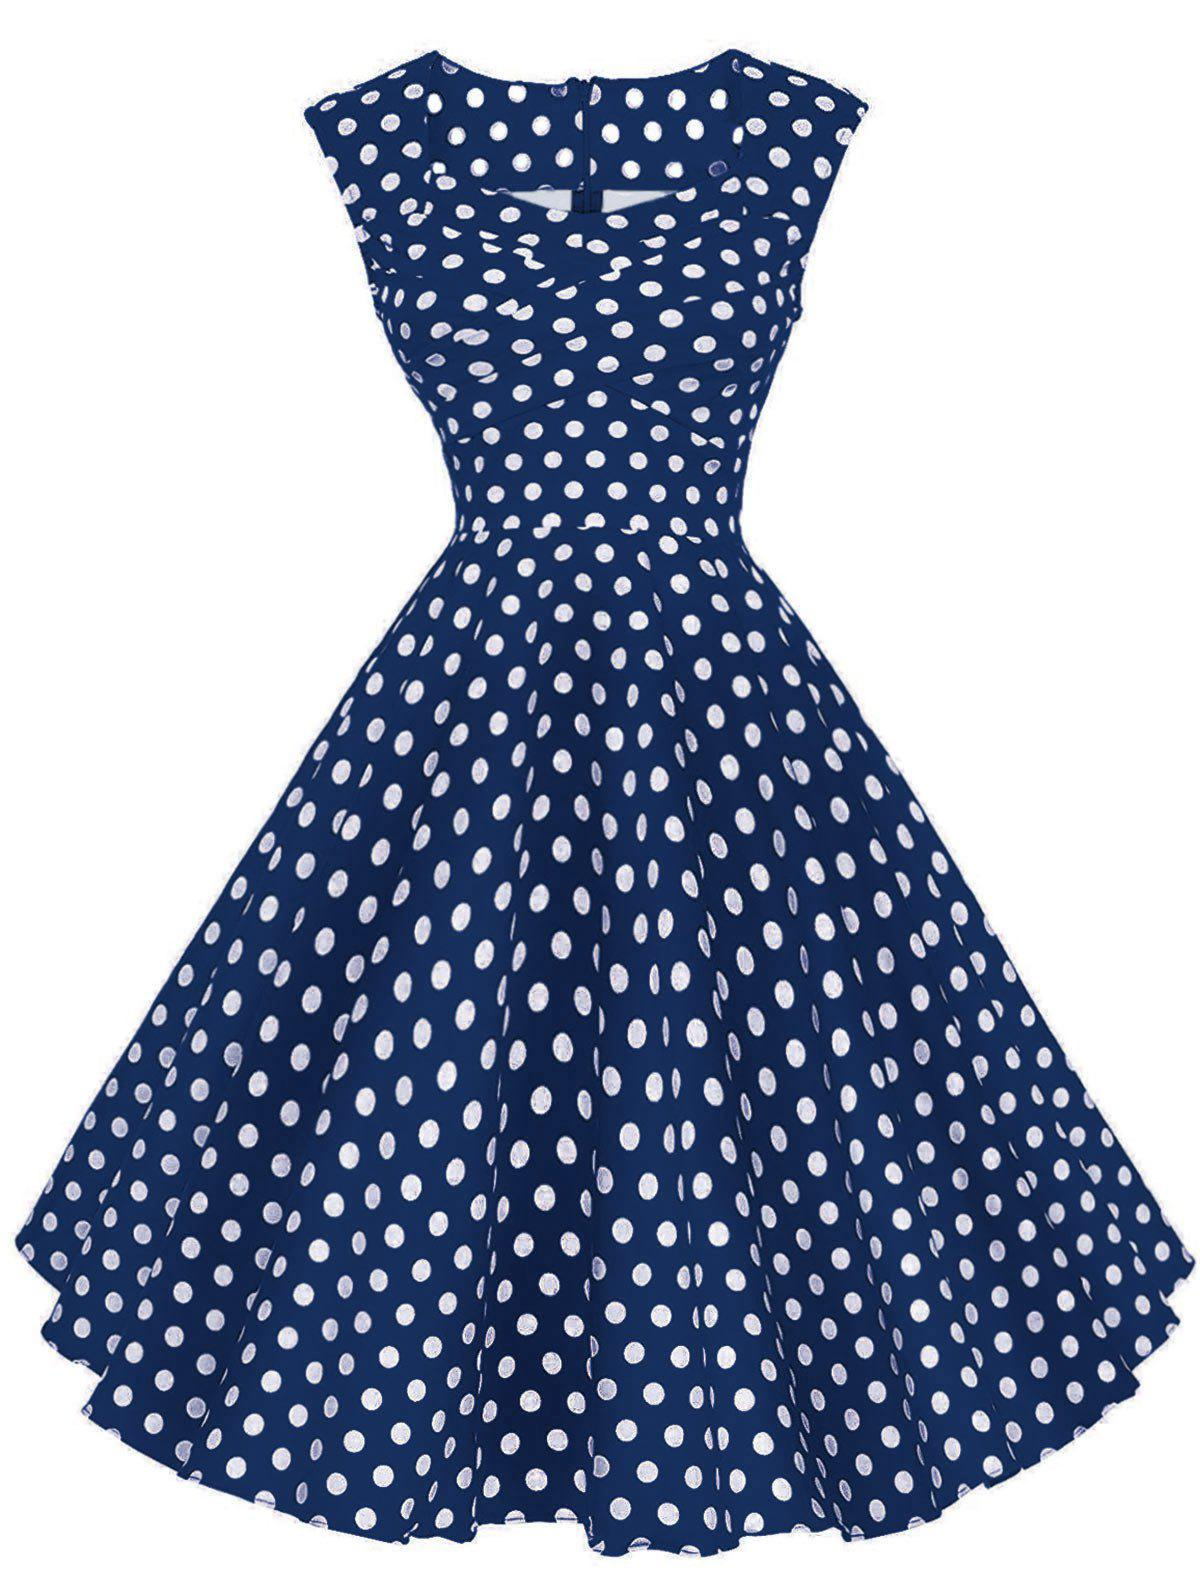 Hot Polka Dot Sleeveless Party Dress